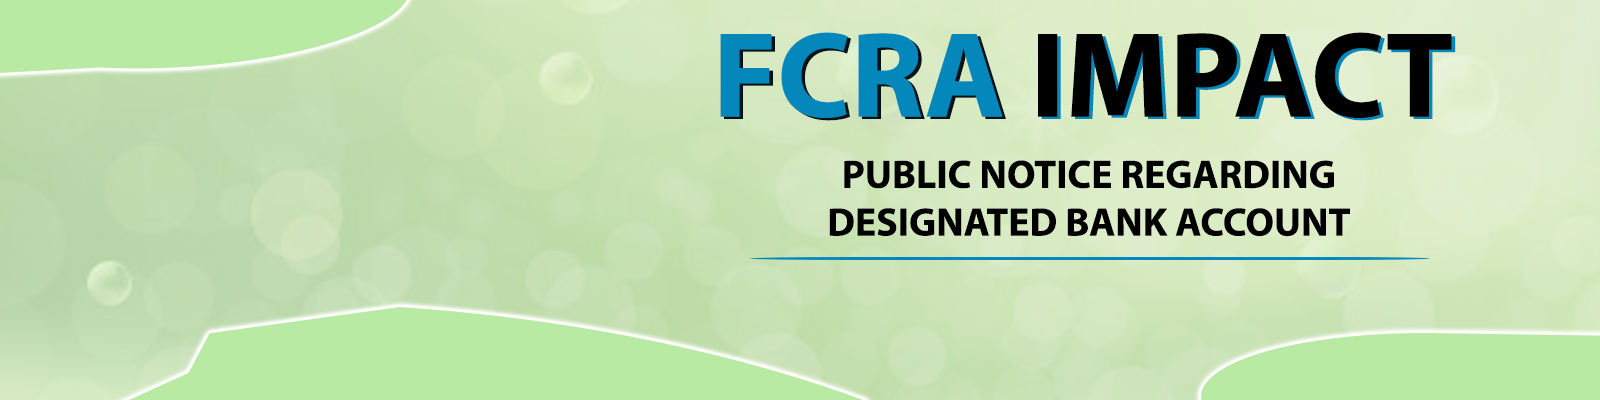 E-communique released on FCRA IMPACT - Public Notice regarding Designated Bank Account